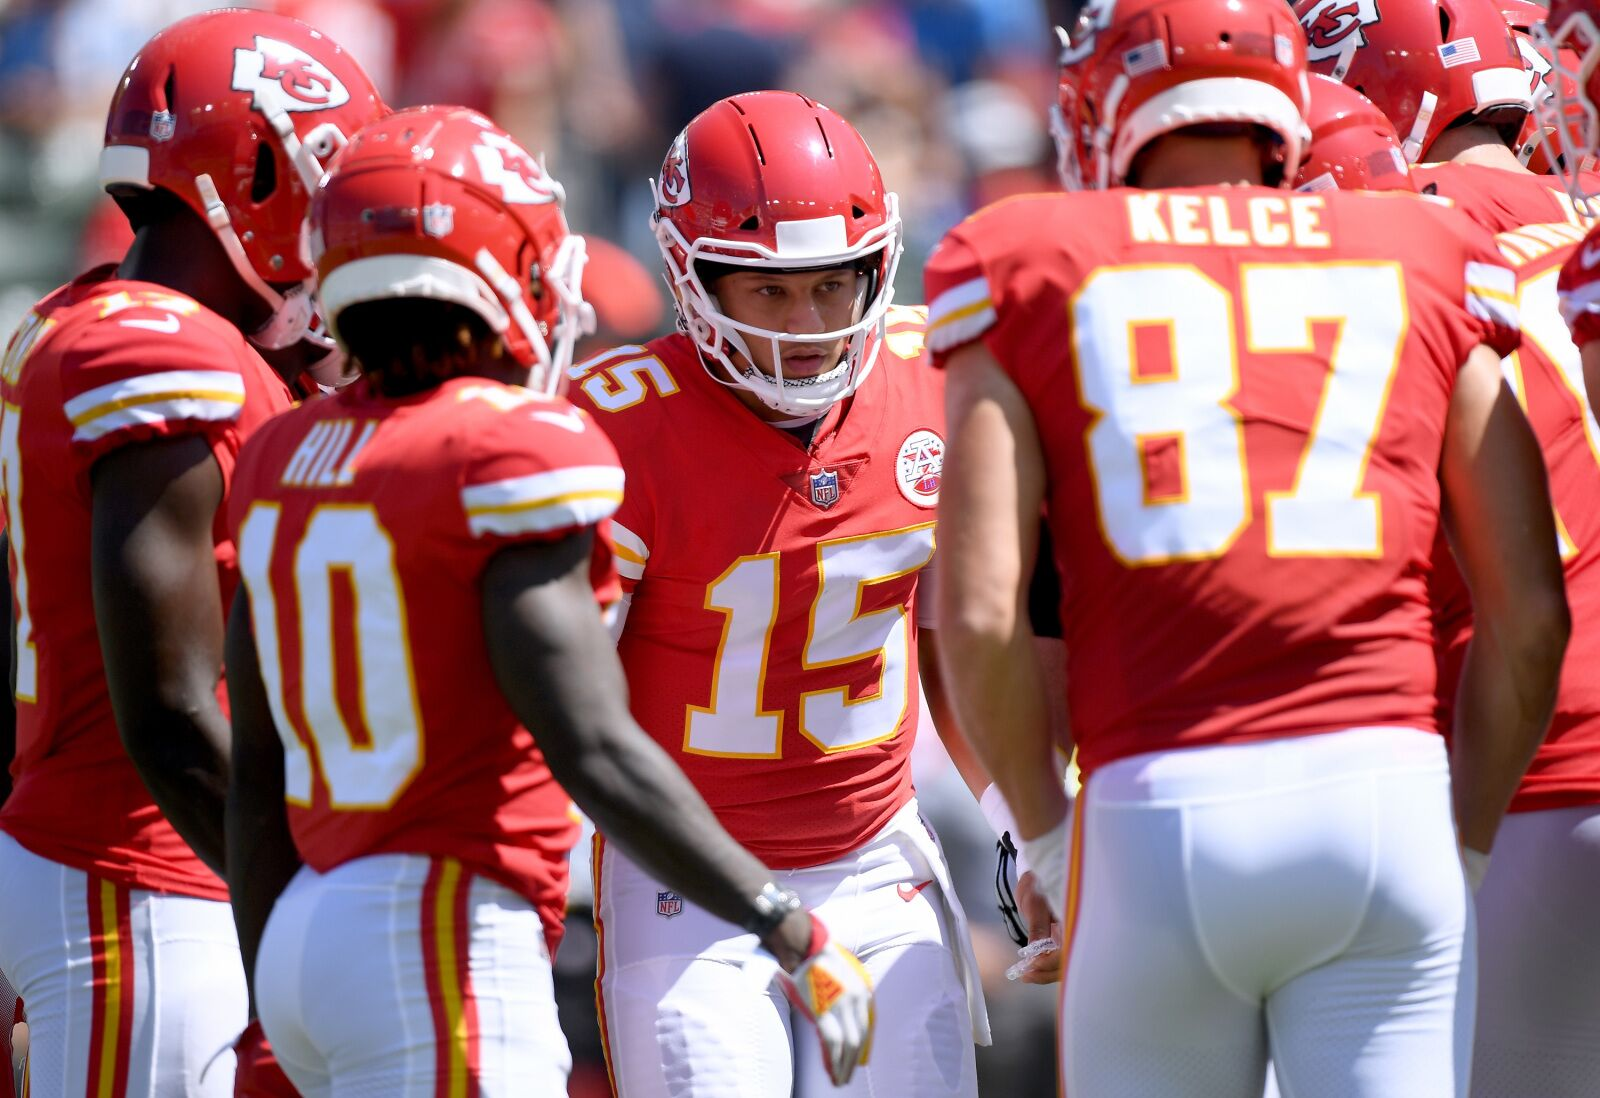 c3c11a500 Can the Kansas City Chiefs stay undefeated for a full season